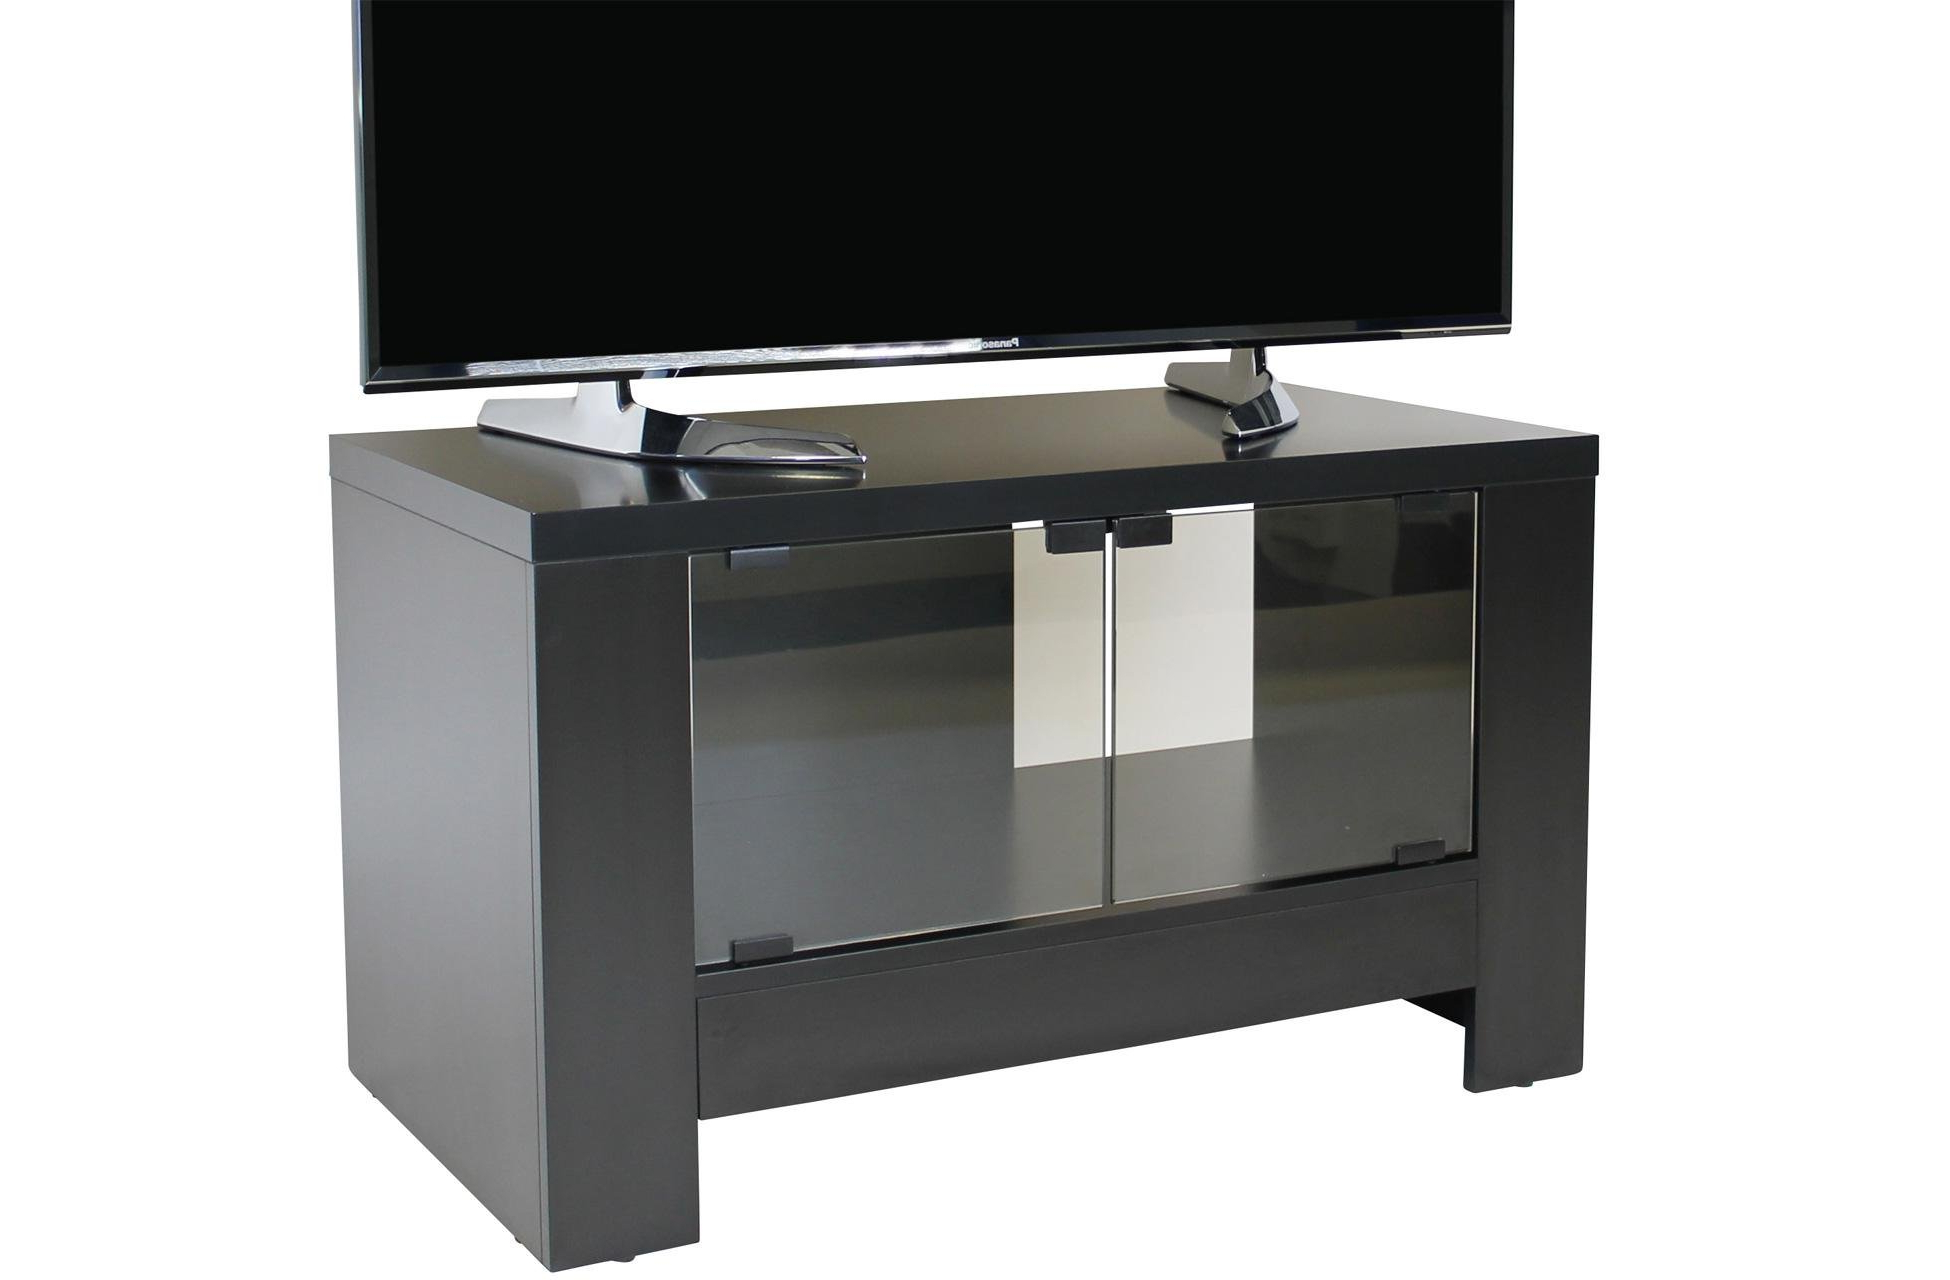 Richer Sounds Tv Stand For Well Known Richer Sounds Tv Stands Cozy 1950×1280 Attachment (View 7 of 20)